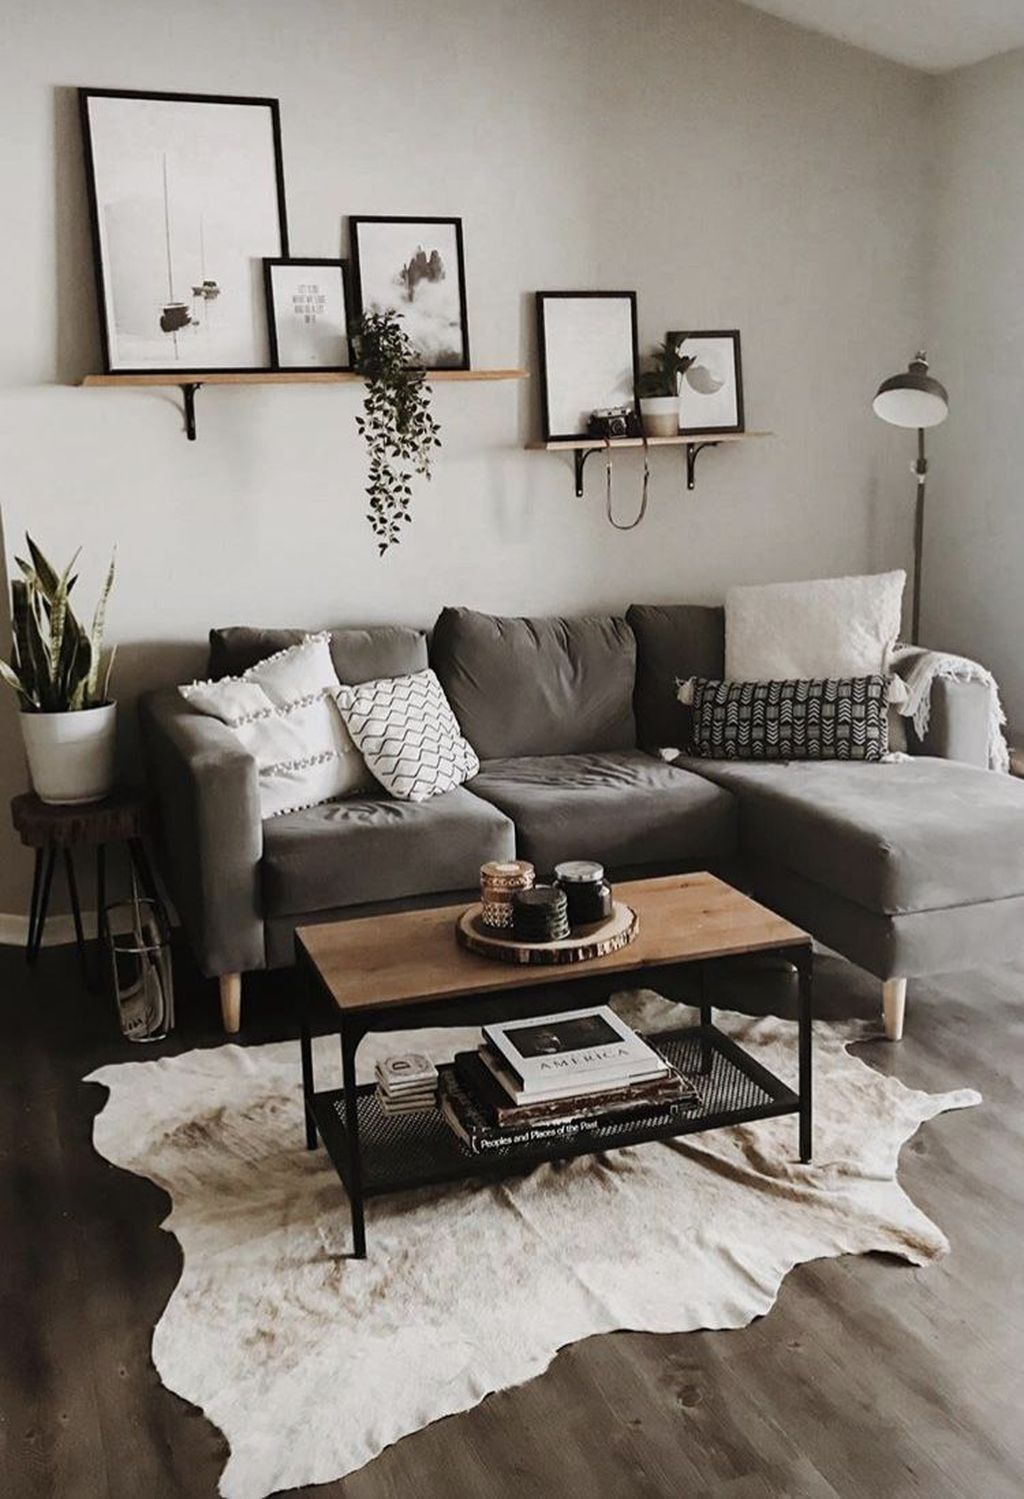 33 Latest Living Room Ideas For Small Space #cozyliving